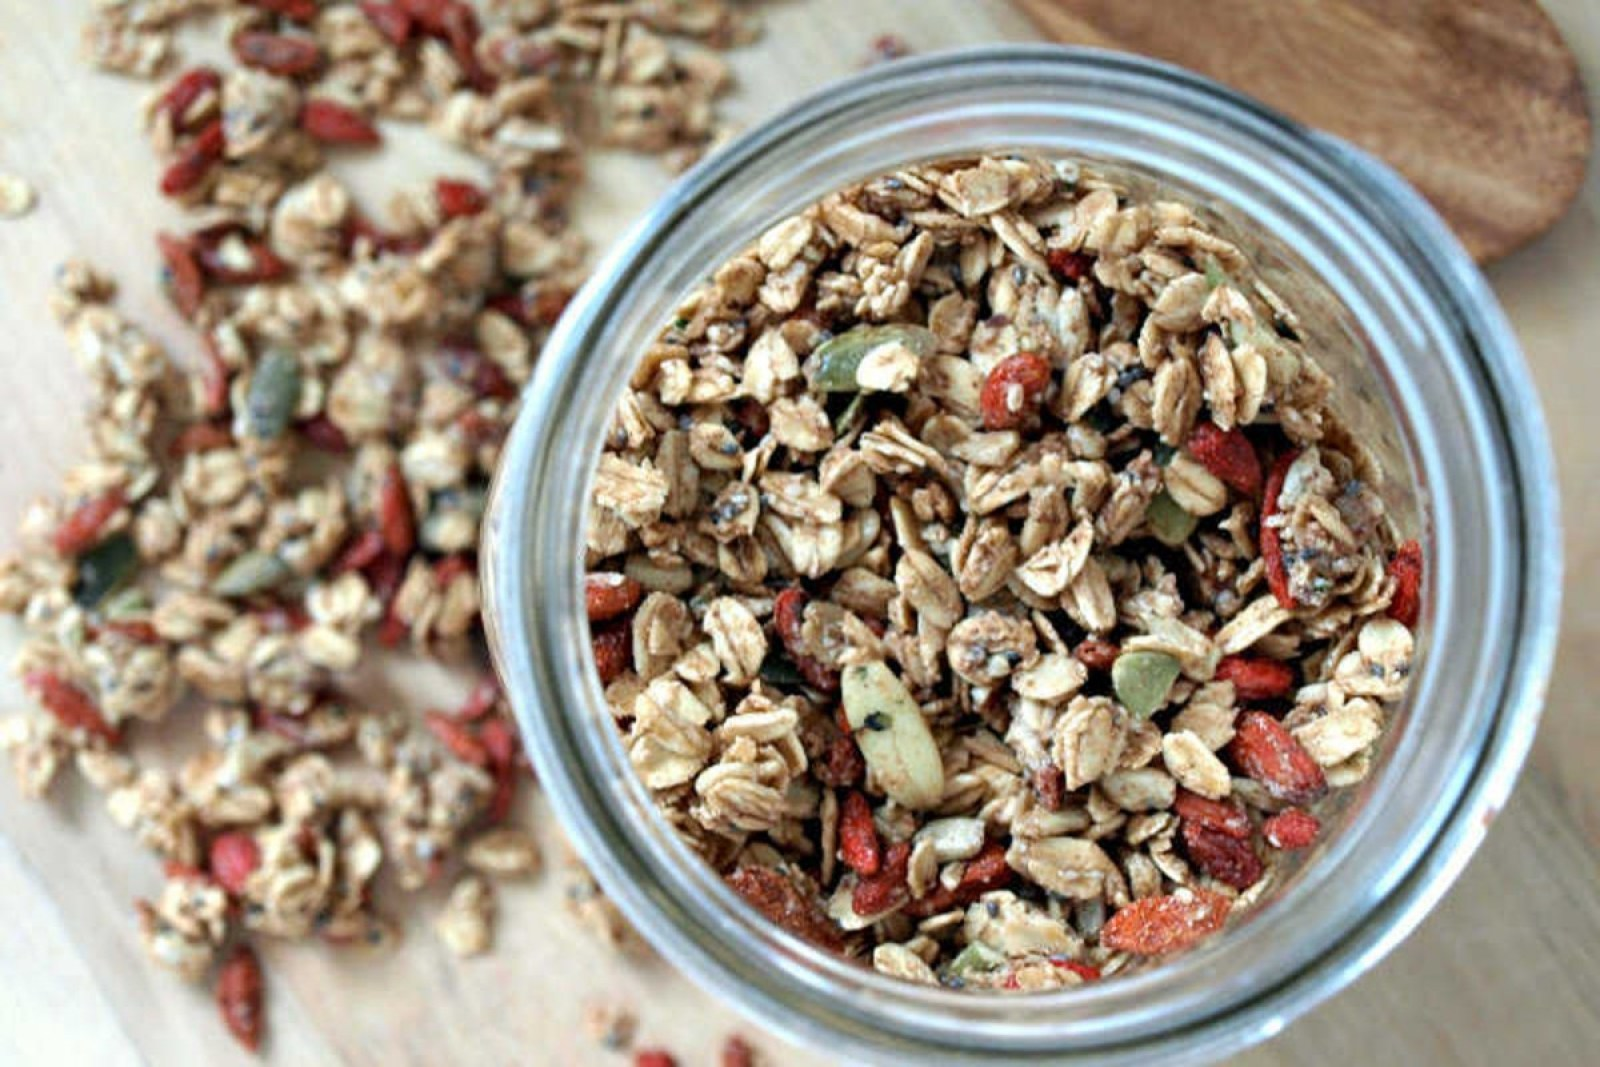 Vegan Seeds and Goji Berry Granola